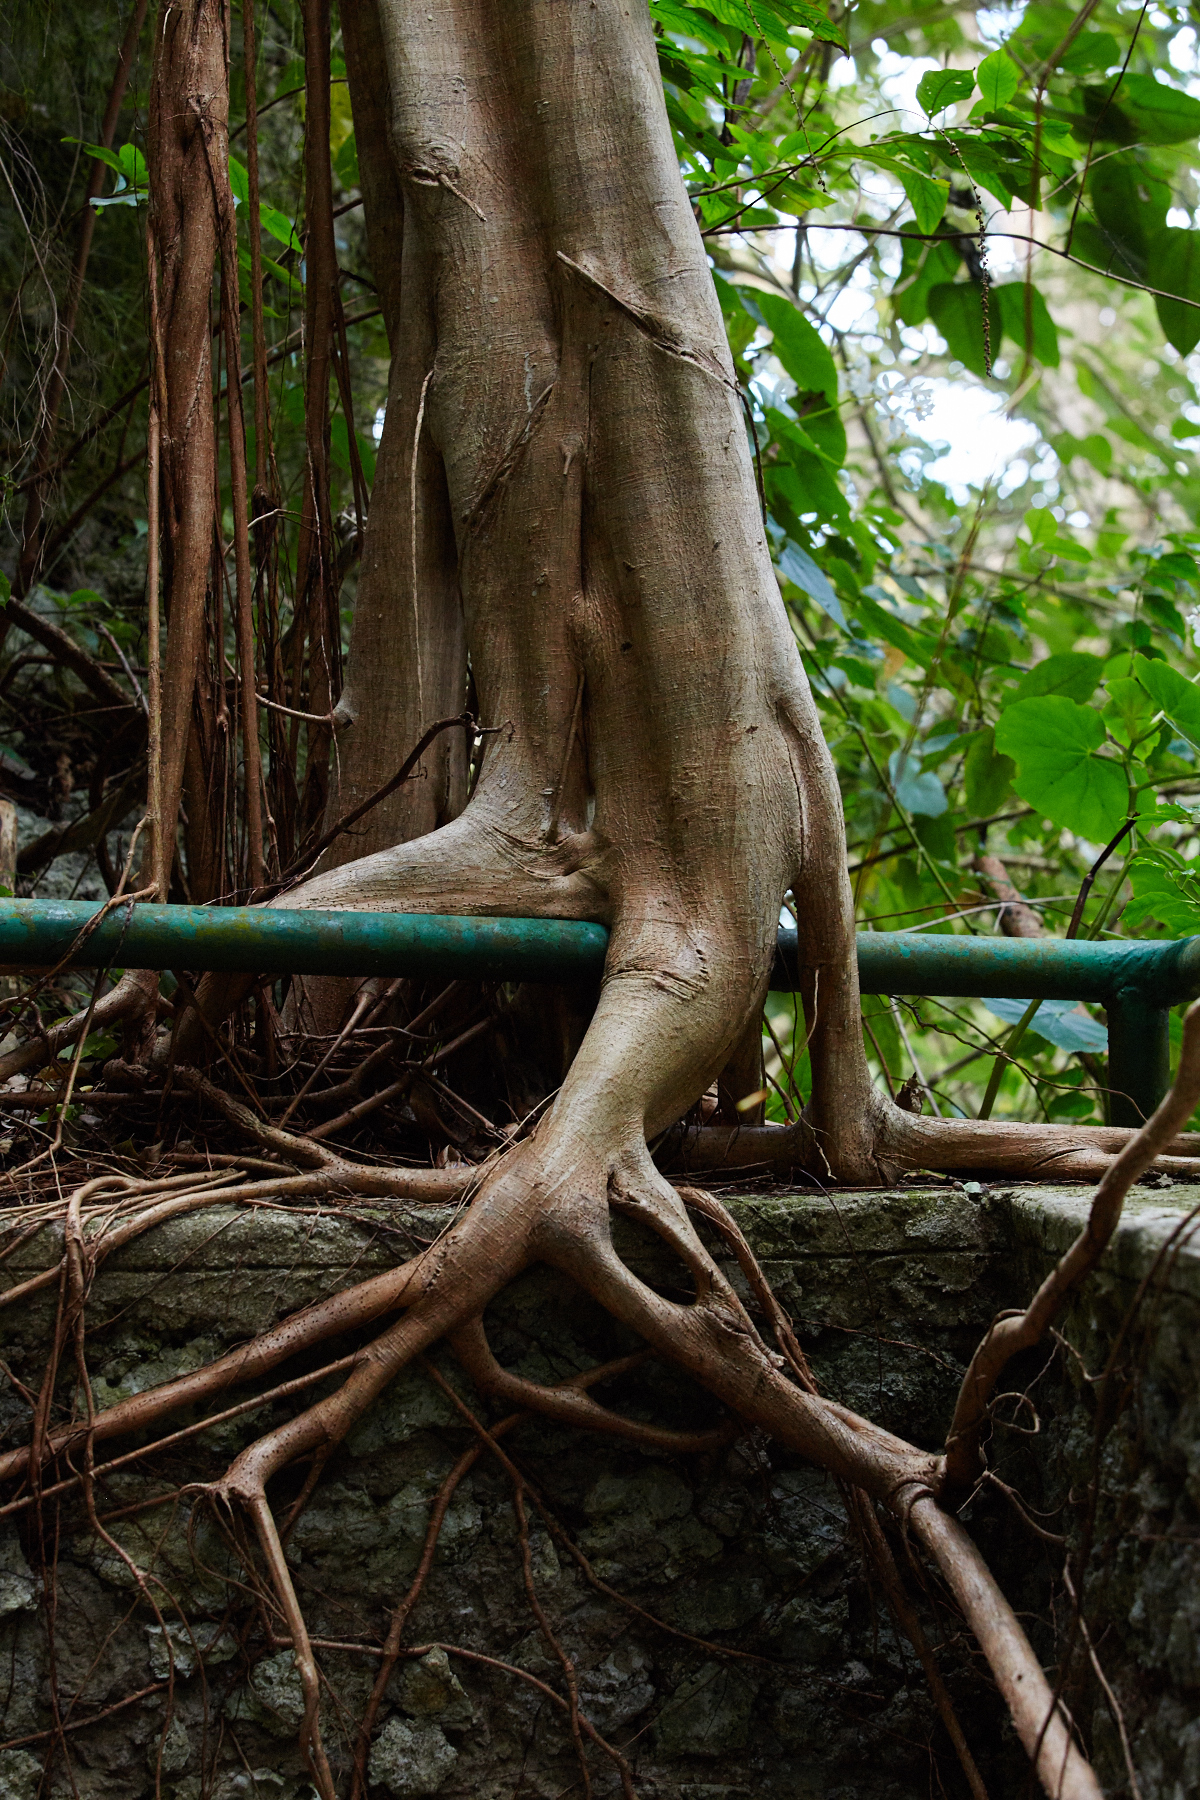 Tree growing over the railing